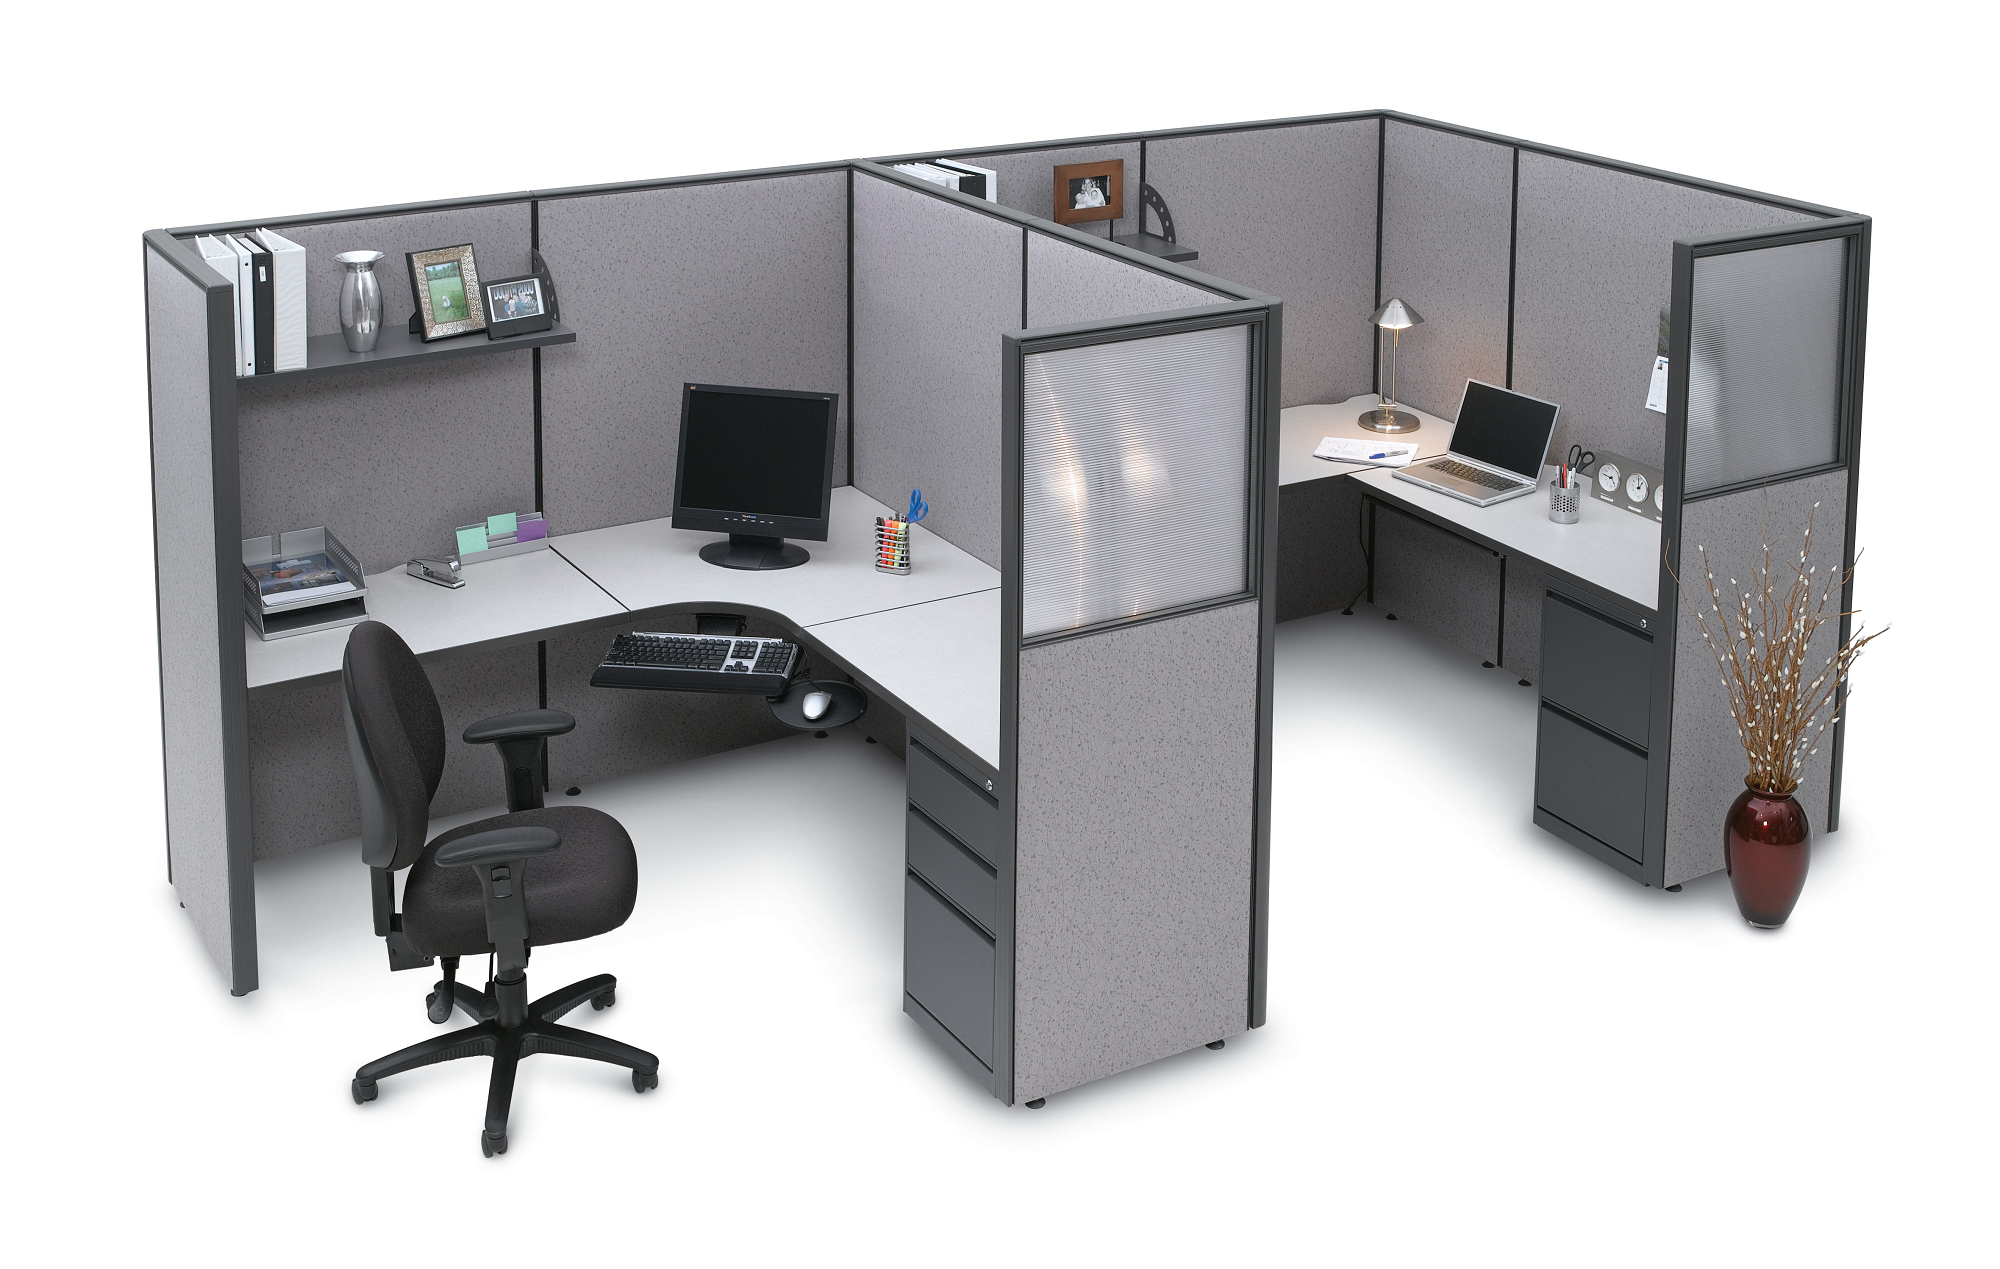 New Systems Furniture Office Furniture Solutions Inc